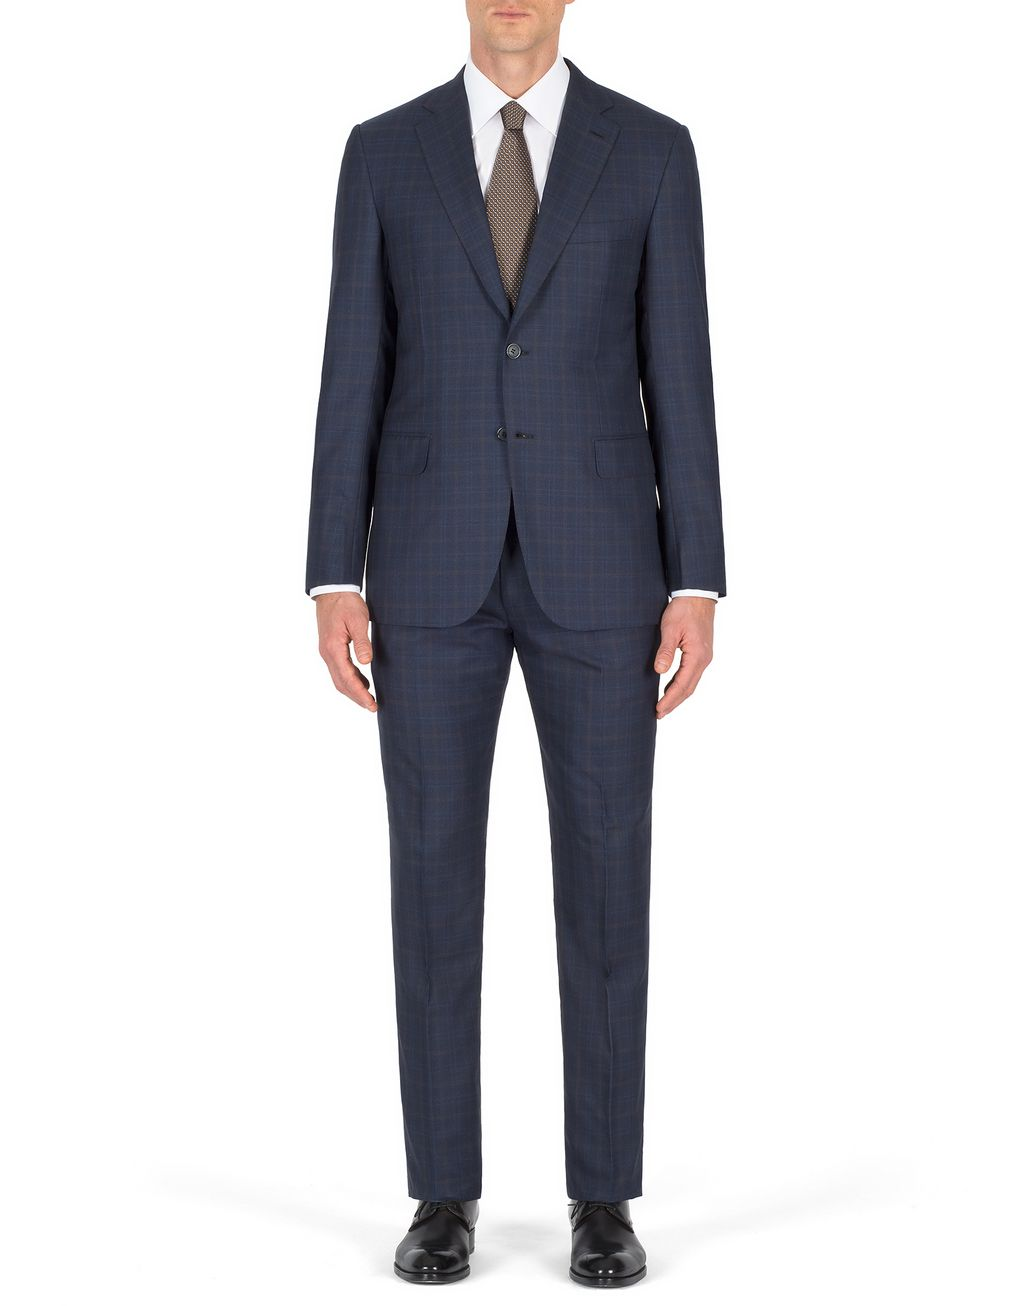 BRIONI Navy Blue Subtle Check Brunico Suit Suits & Jackets U r